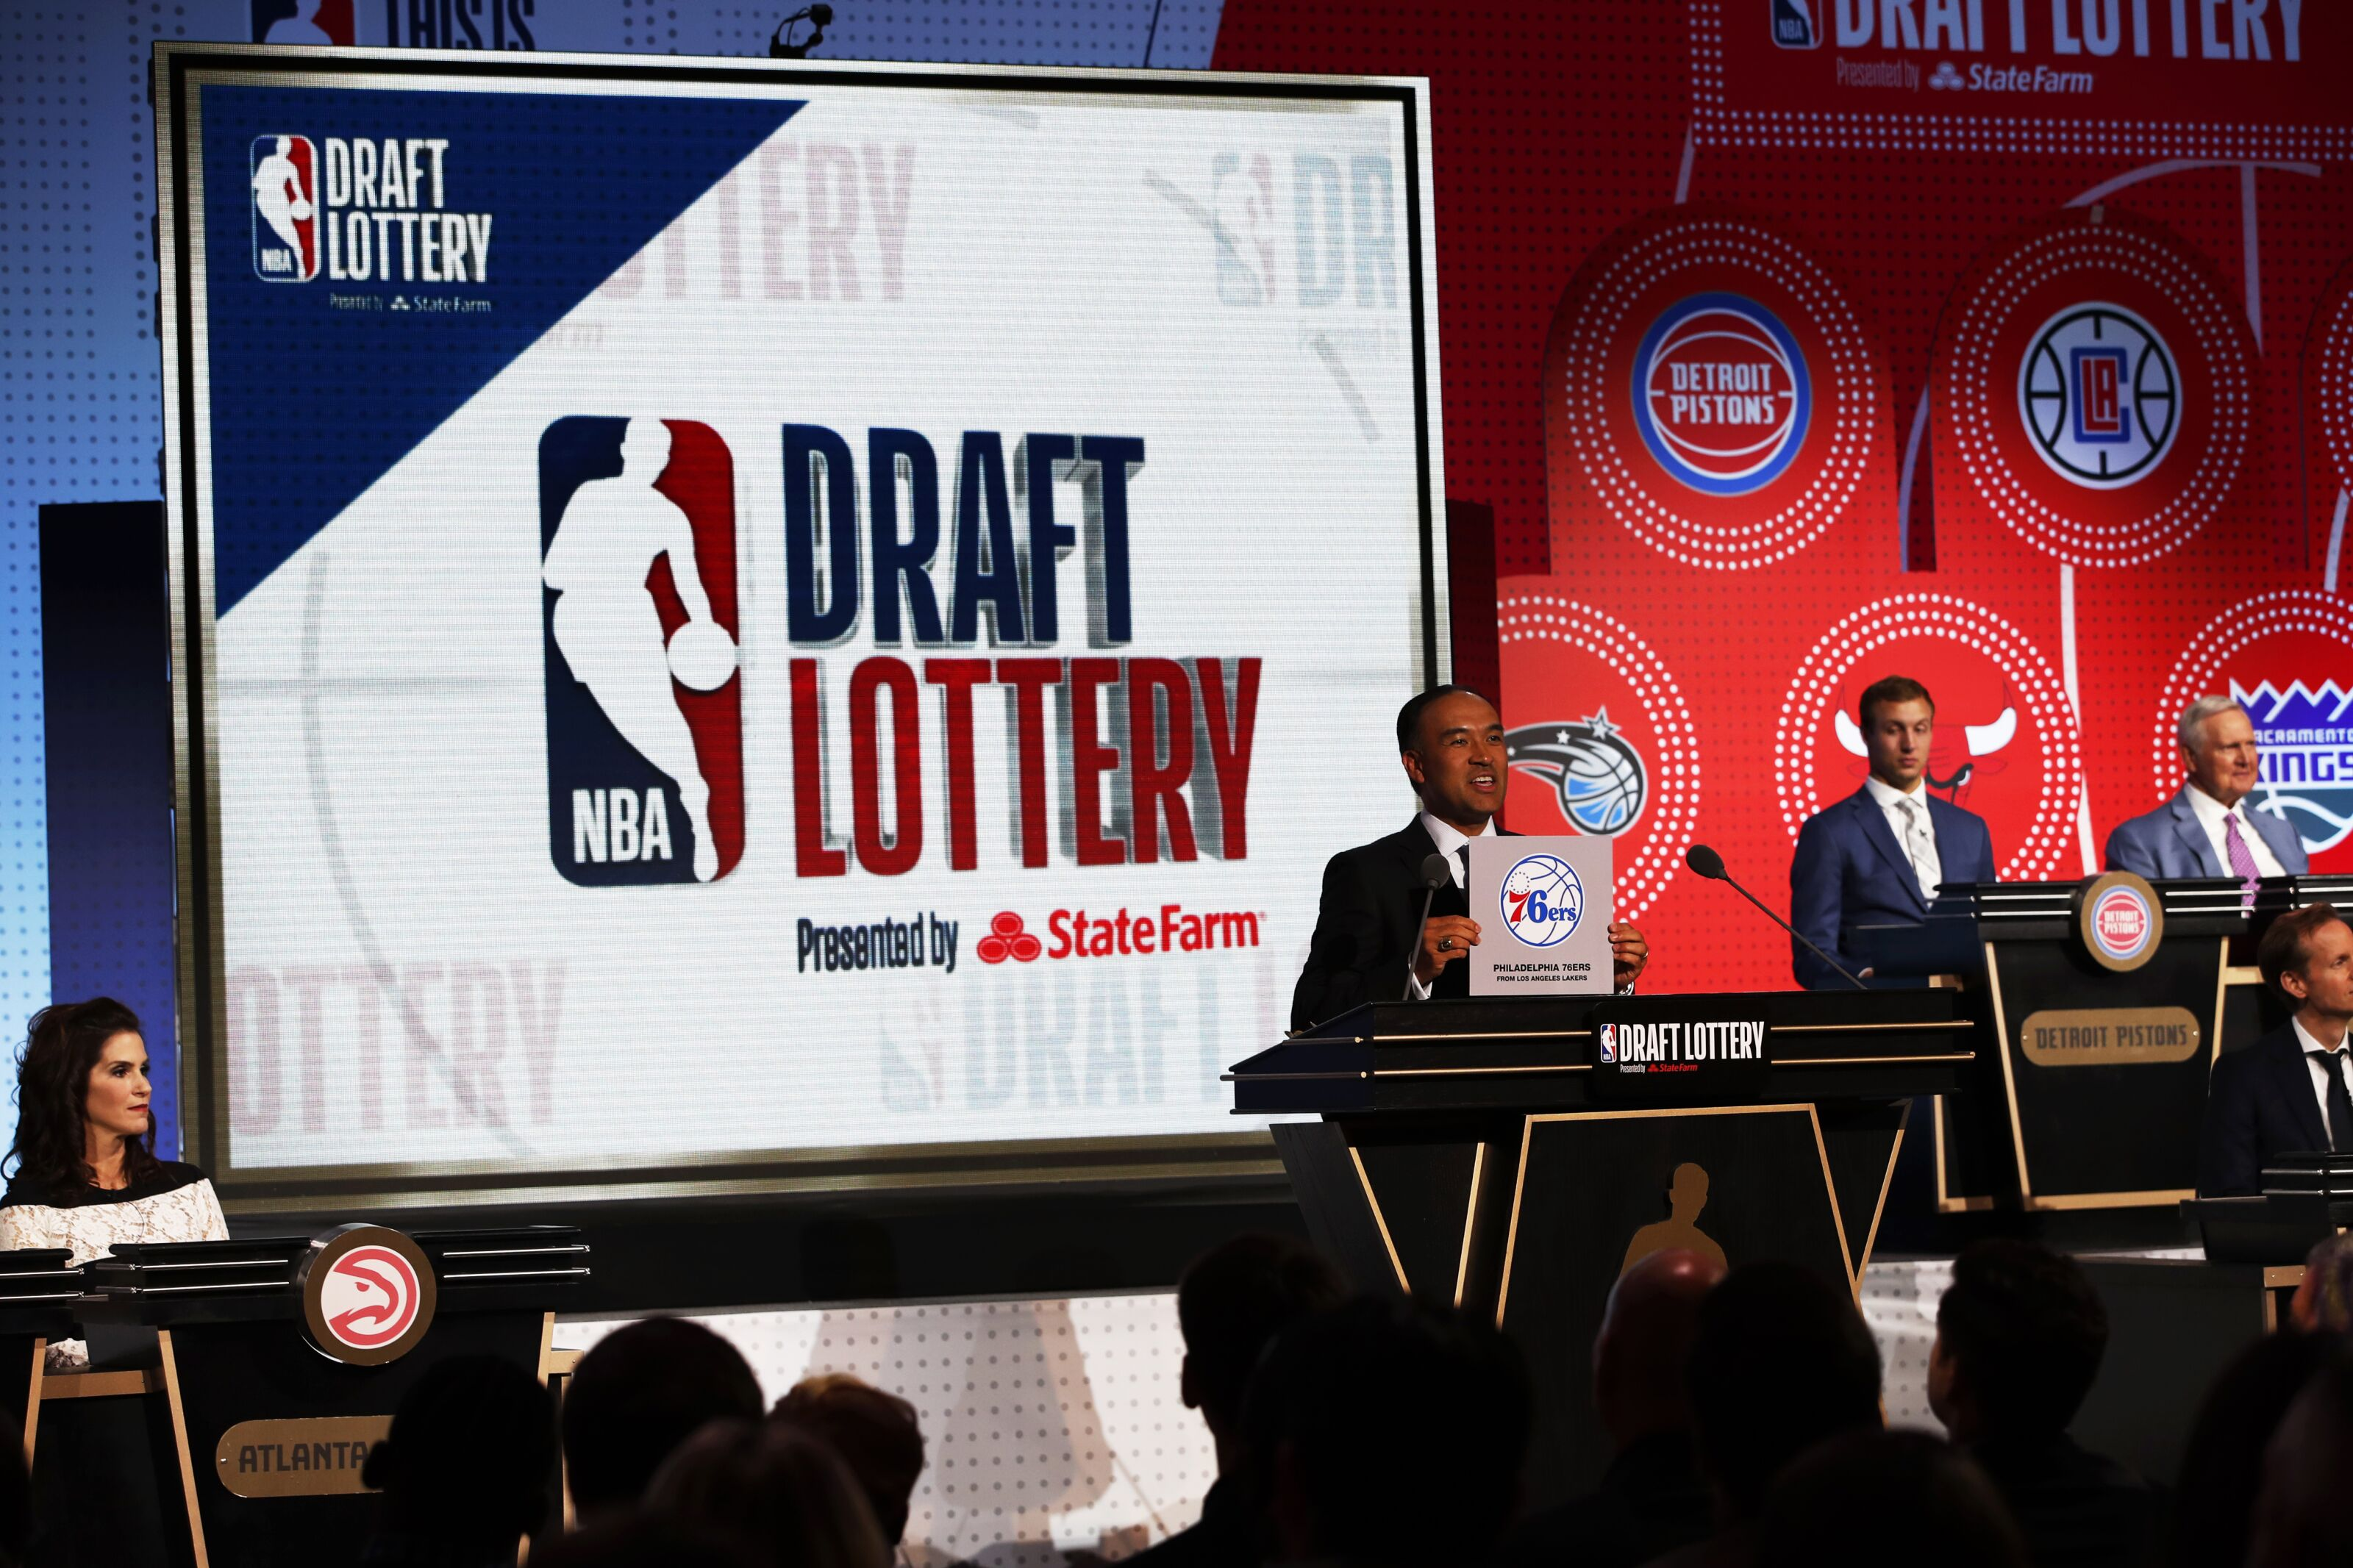 CHICAGO - MAY 15: NBA Deputy Commissioner, Mark Tatum awards the Philadelphia 76ers the number ten pick in the 2018 NBA Draft during the 2018 NBA Draft Lottery at the Palmer House Hotel on May 15, 2018 in Chicago Illinois. NOTE TO USER: User expressly acknowledges and agrees that, by downloading and/or using this photograph, user is consenting to the terms and conditions of the Getty Images License Agreement. Mandatory Copyright Notice: Copyright 2018 NBAE (Photo by Jeff Haynes/NBAE via Getty Images)